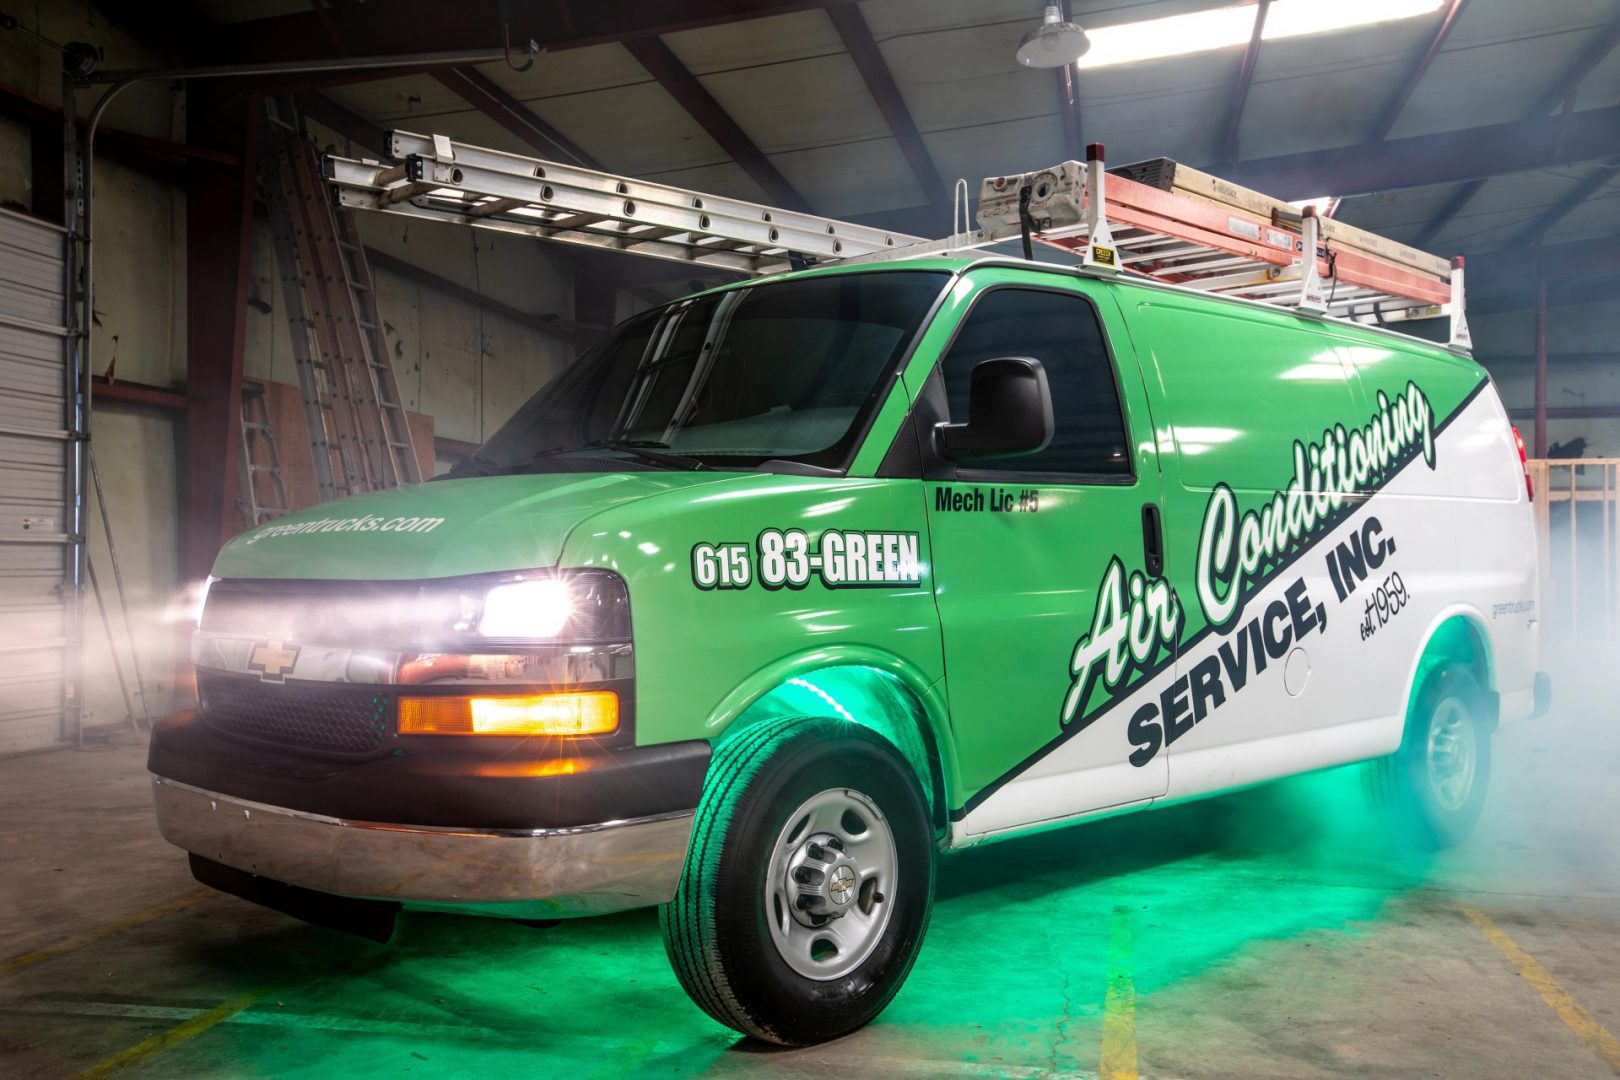 HVAC Experts in the Green Trucks for Nashville HVAC Install, HVAC Repair, and Duct Cleaning